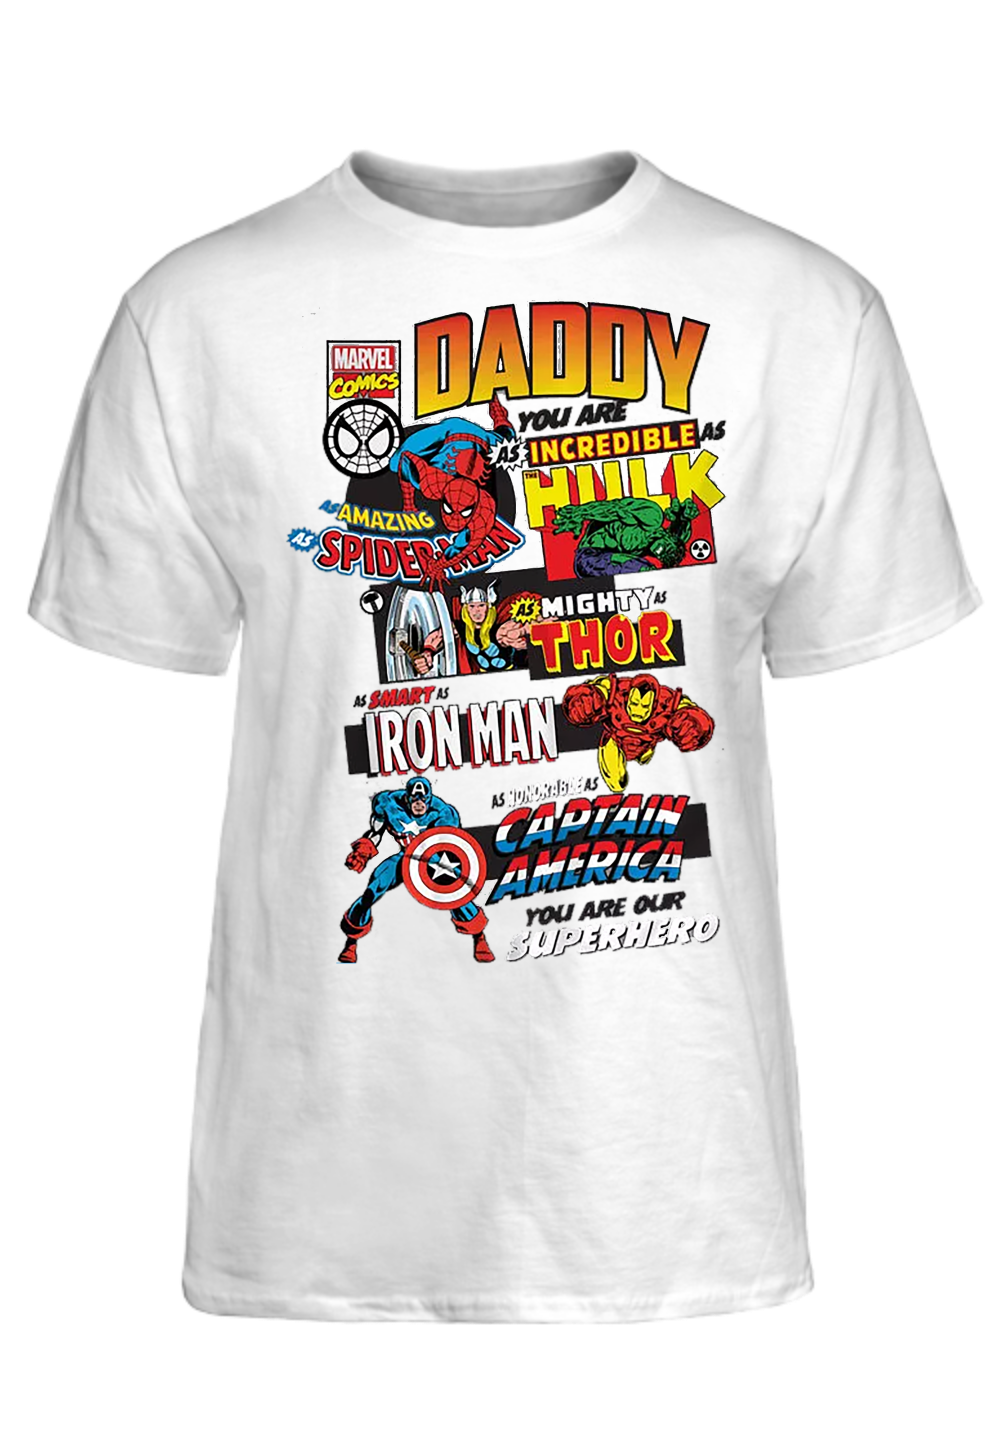 08c7c83f5a5 Marvel Comics Father s Day T-Shirt Basic Tee